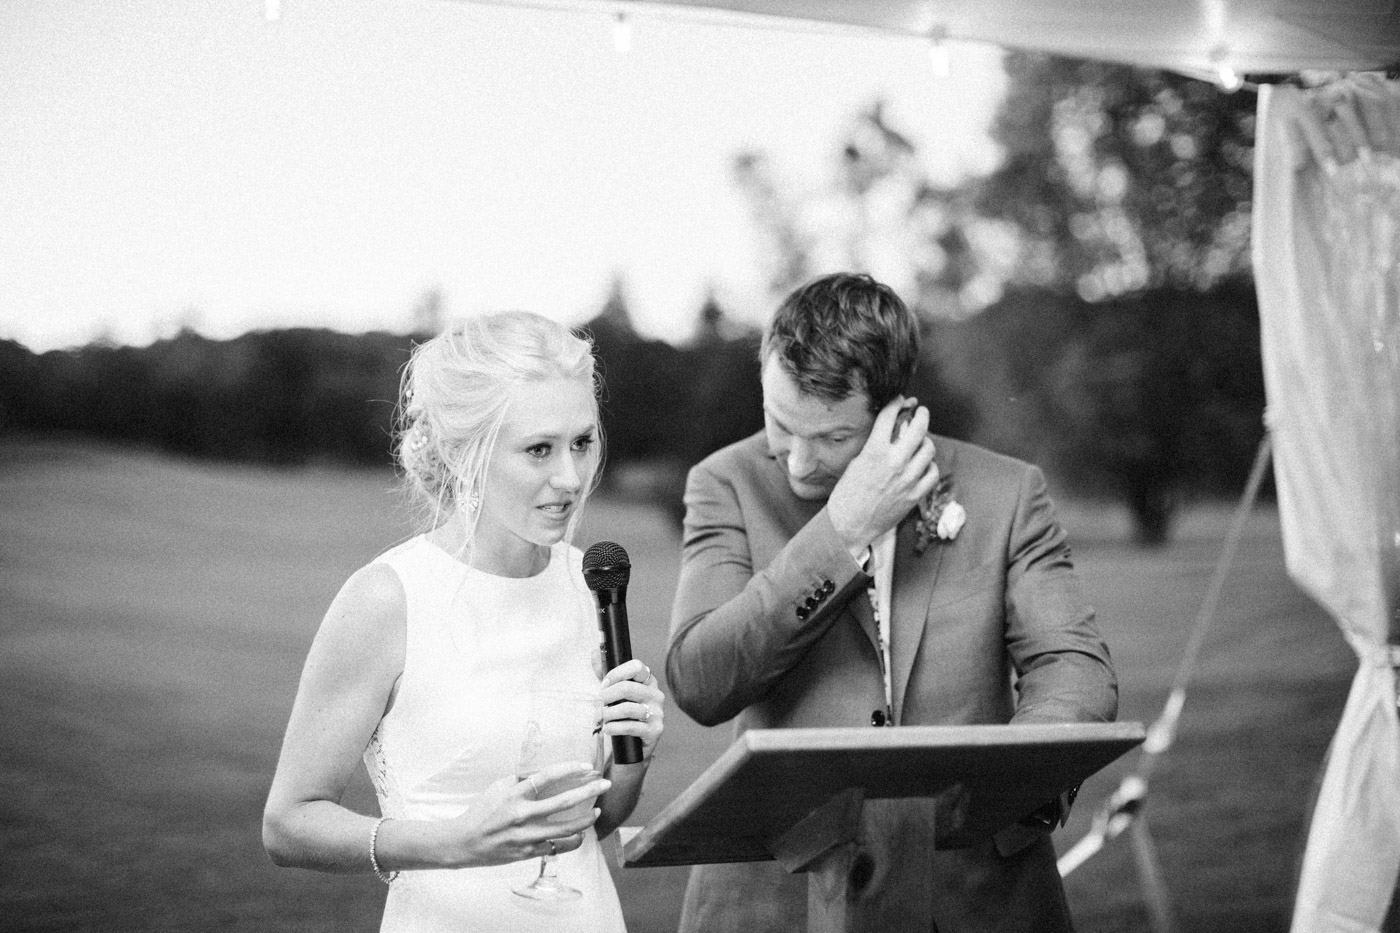 toronto_wedding_photographer_muskoka_outdoor_wedding-100.jpg